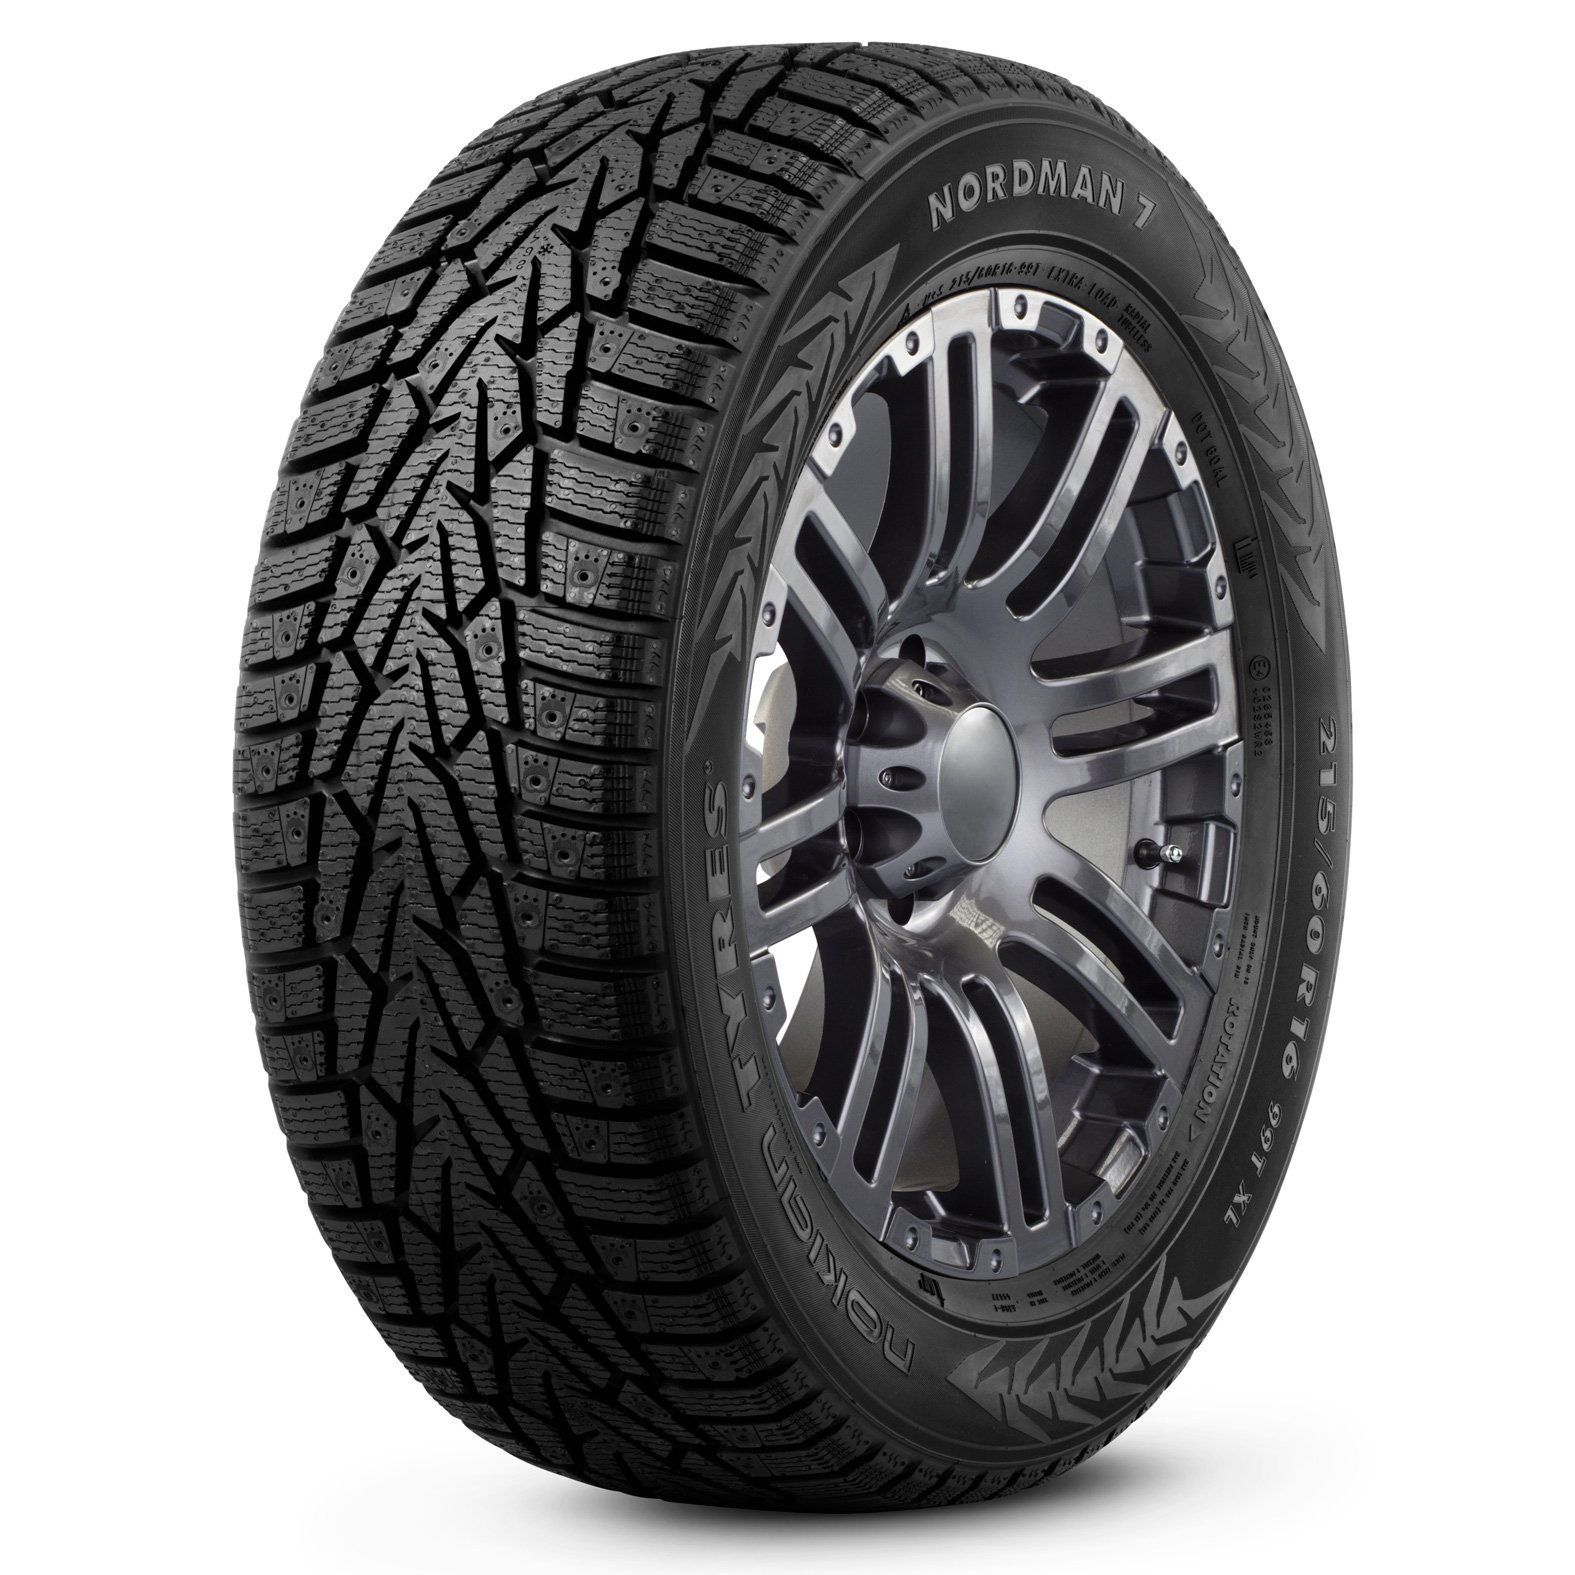 205/65R15 99T XL Nokian Nordman 7 Non-Studded Winter Tire